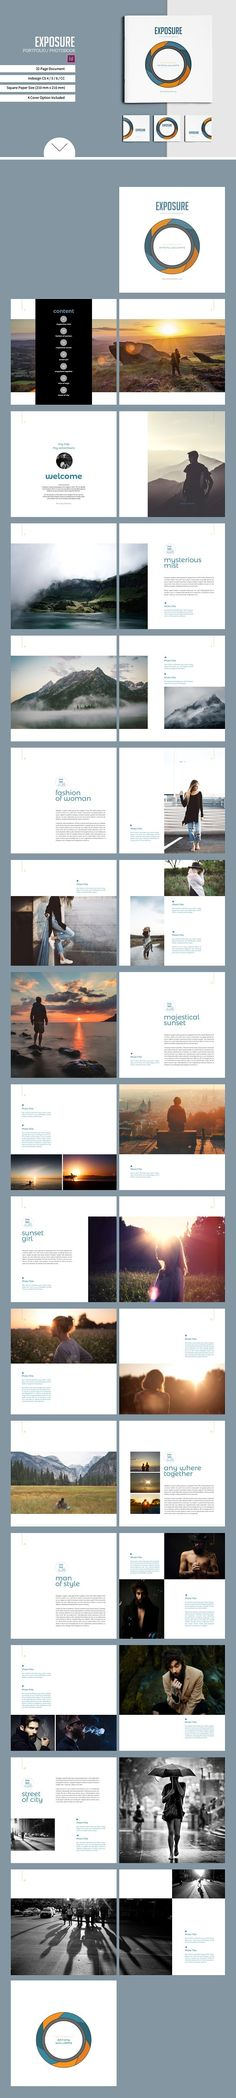 Square Brochure / Portfolio Template by tujuhbenua on @creativemarket